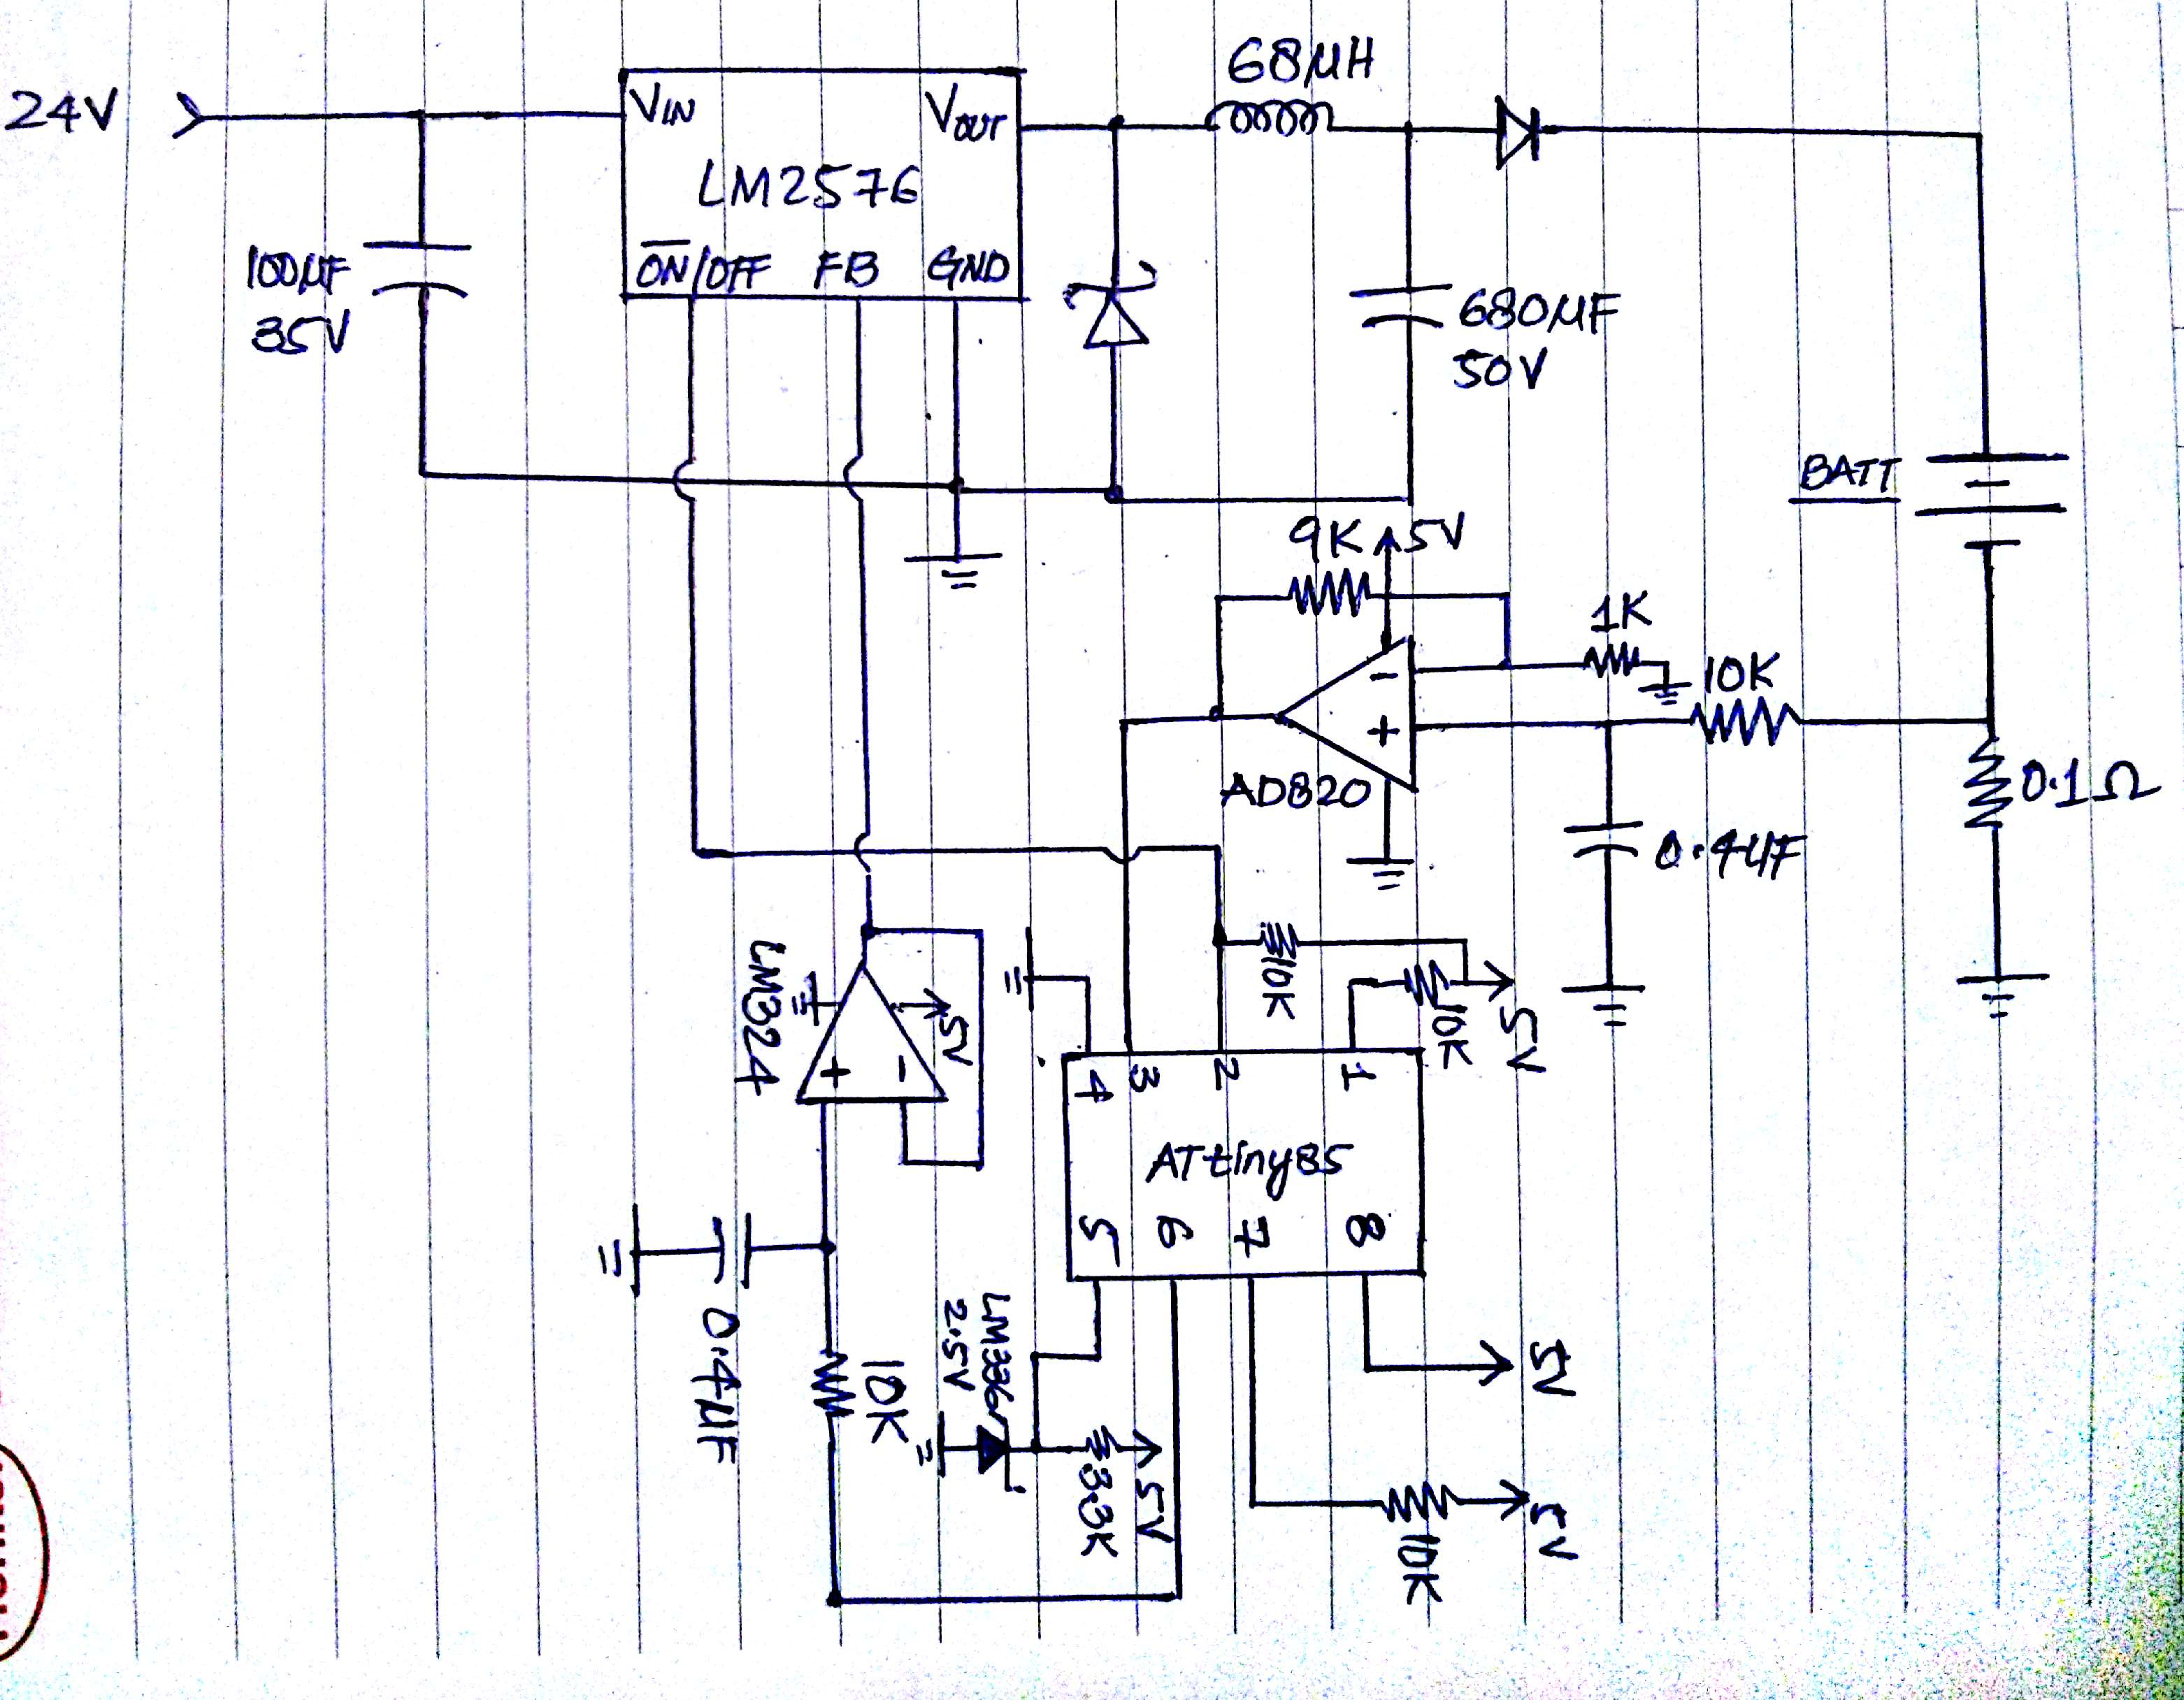 Pid Wiring Diagram With Heat Sink Posts Jld612 Lonetechnologist Traeger Grill